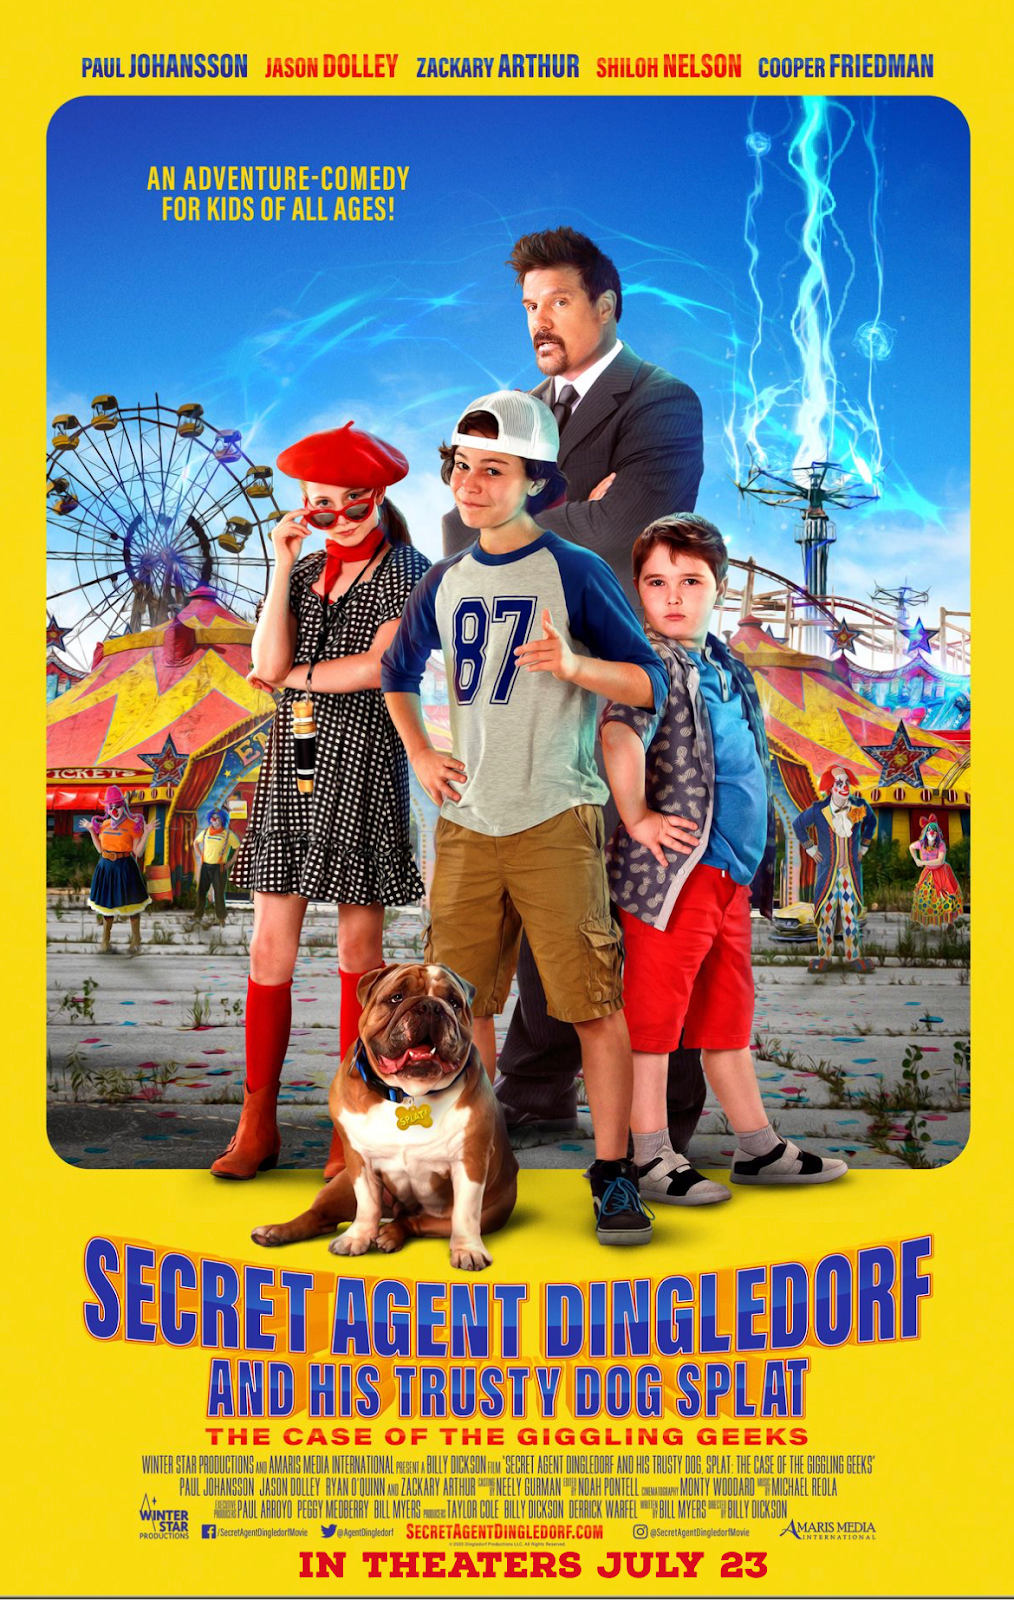 Secret Agent Dingledorf And His Trusty Dog Splat opens in theaters July 23rd